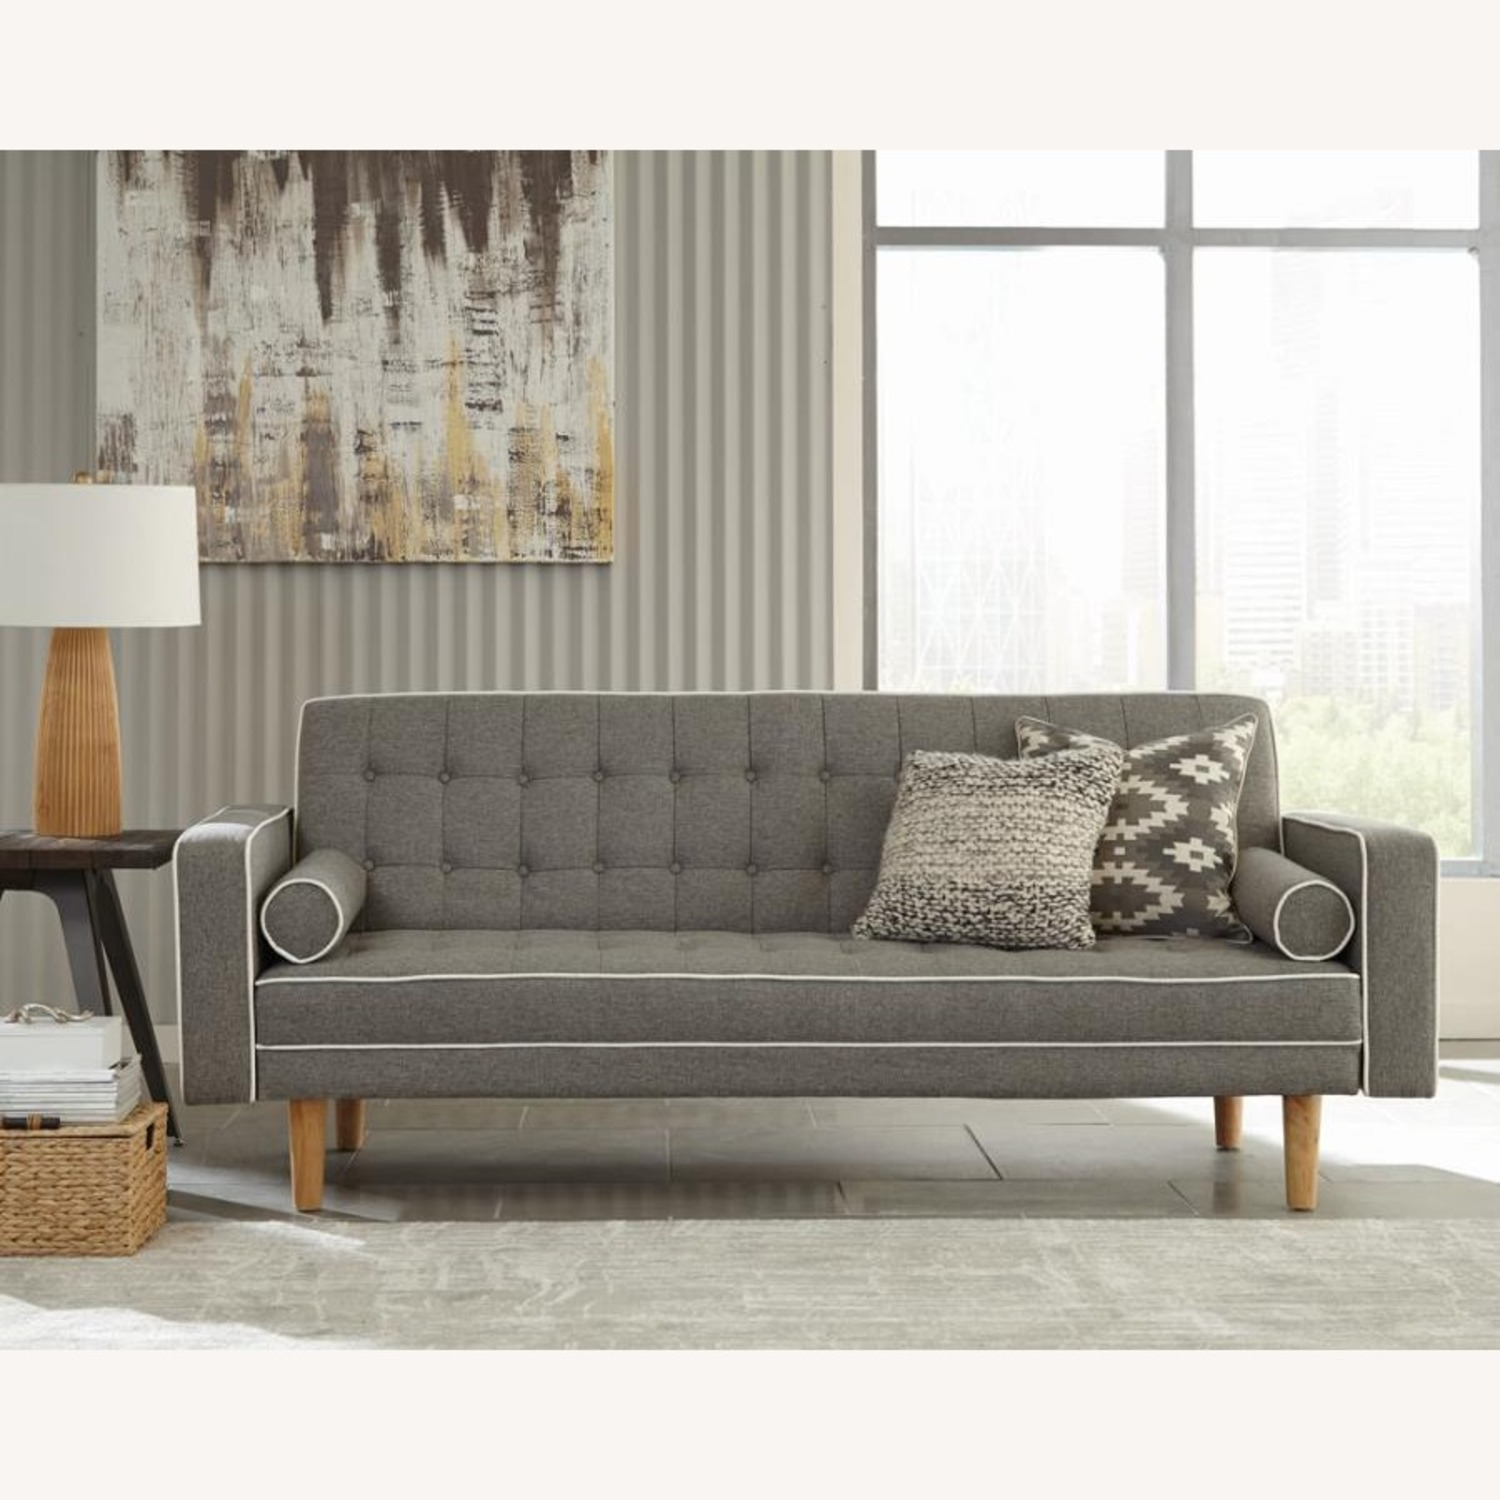 Sofa Bed In Grey Fabric W/ Natural Wood Legs - image-4